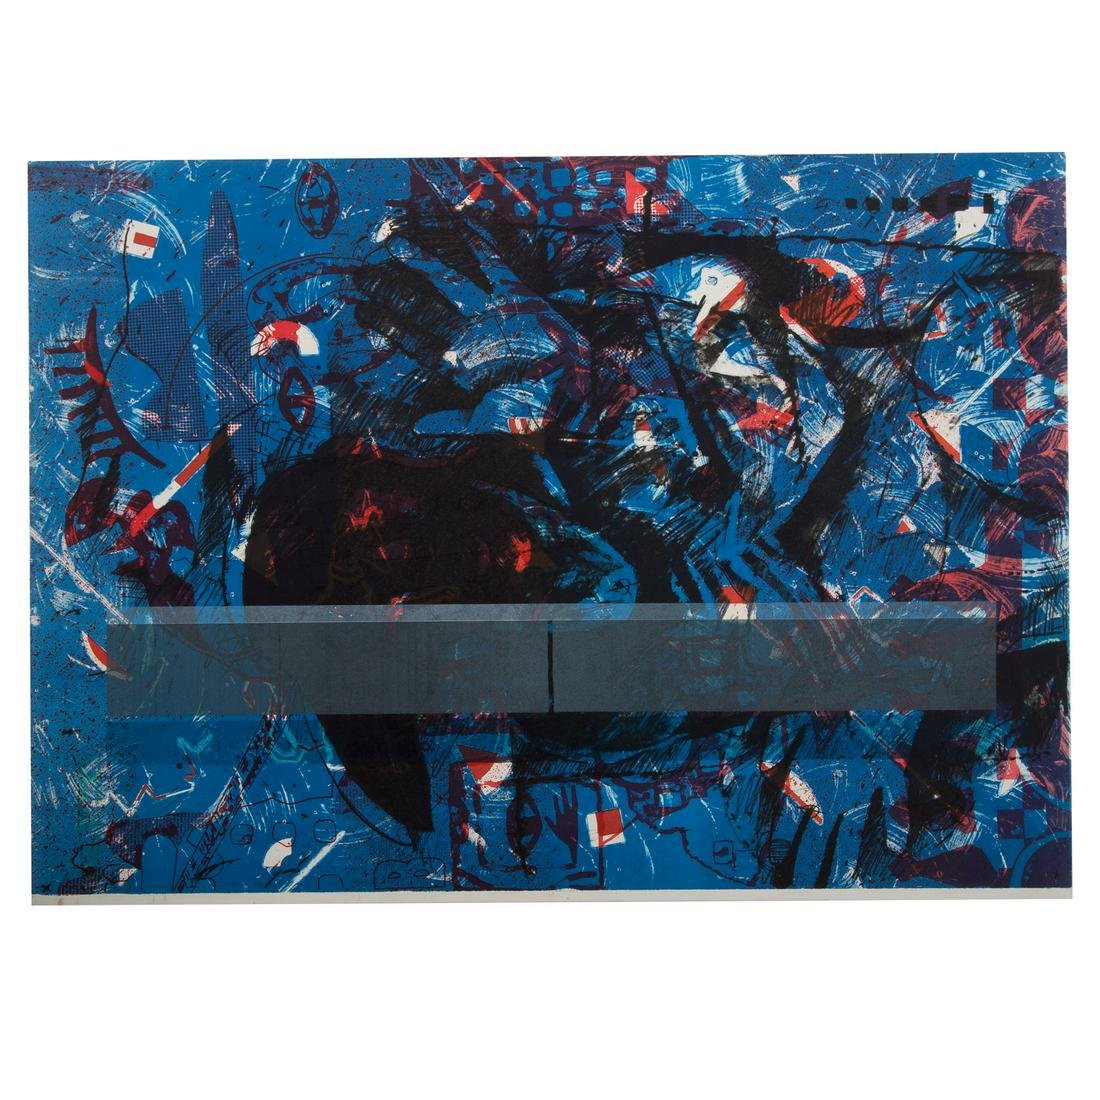 EJ Montgomery. Untitled Abstract in Blue and Red